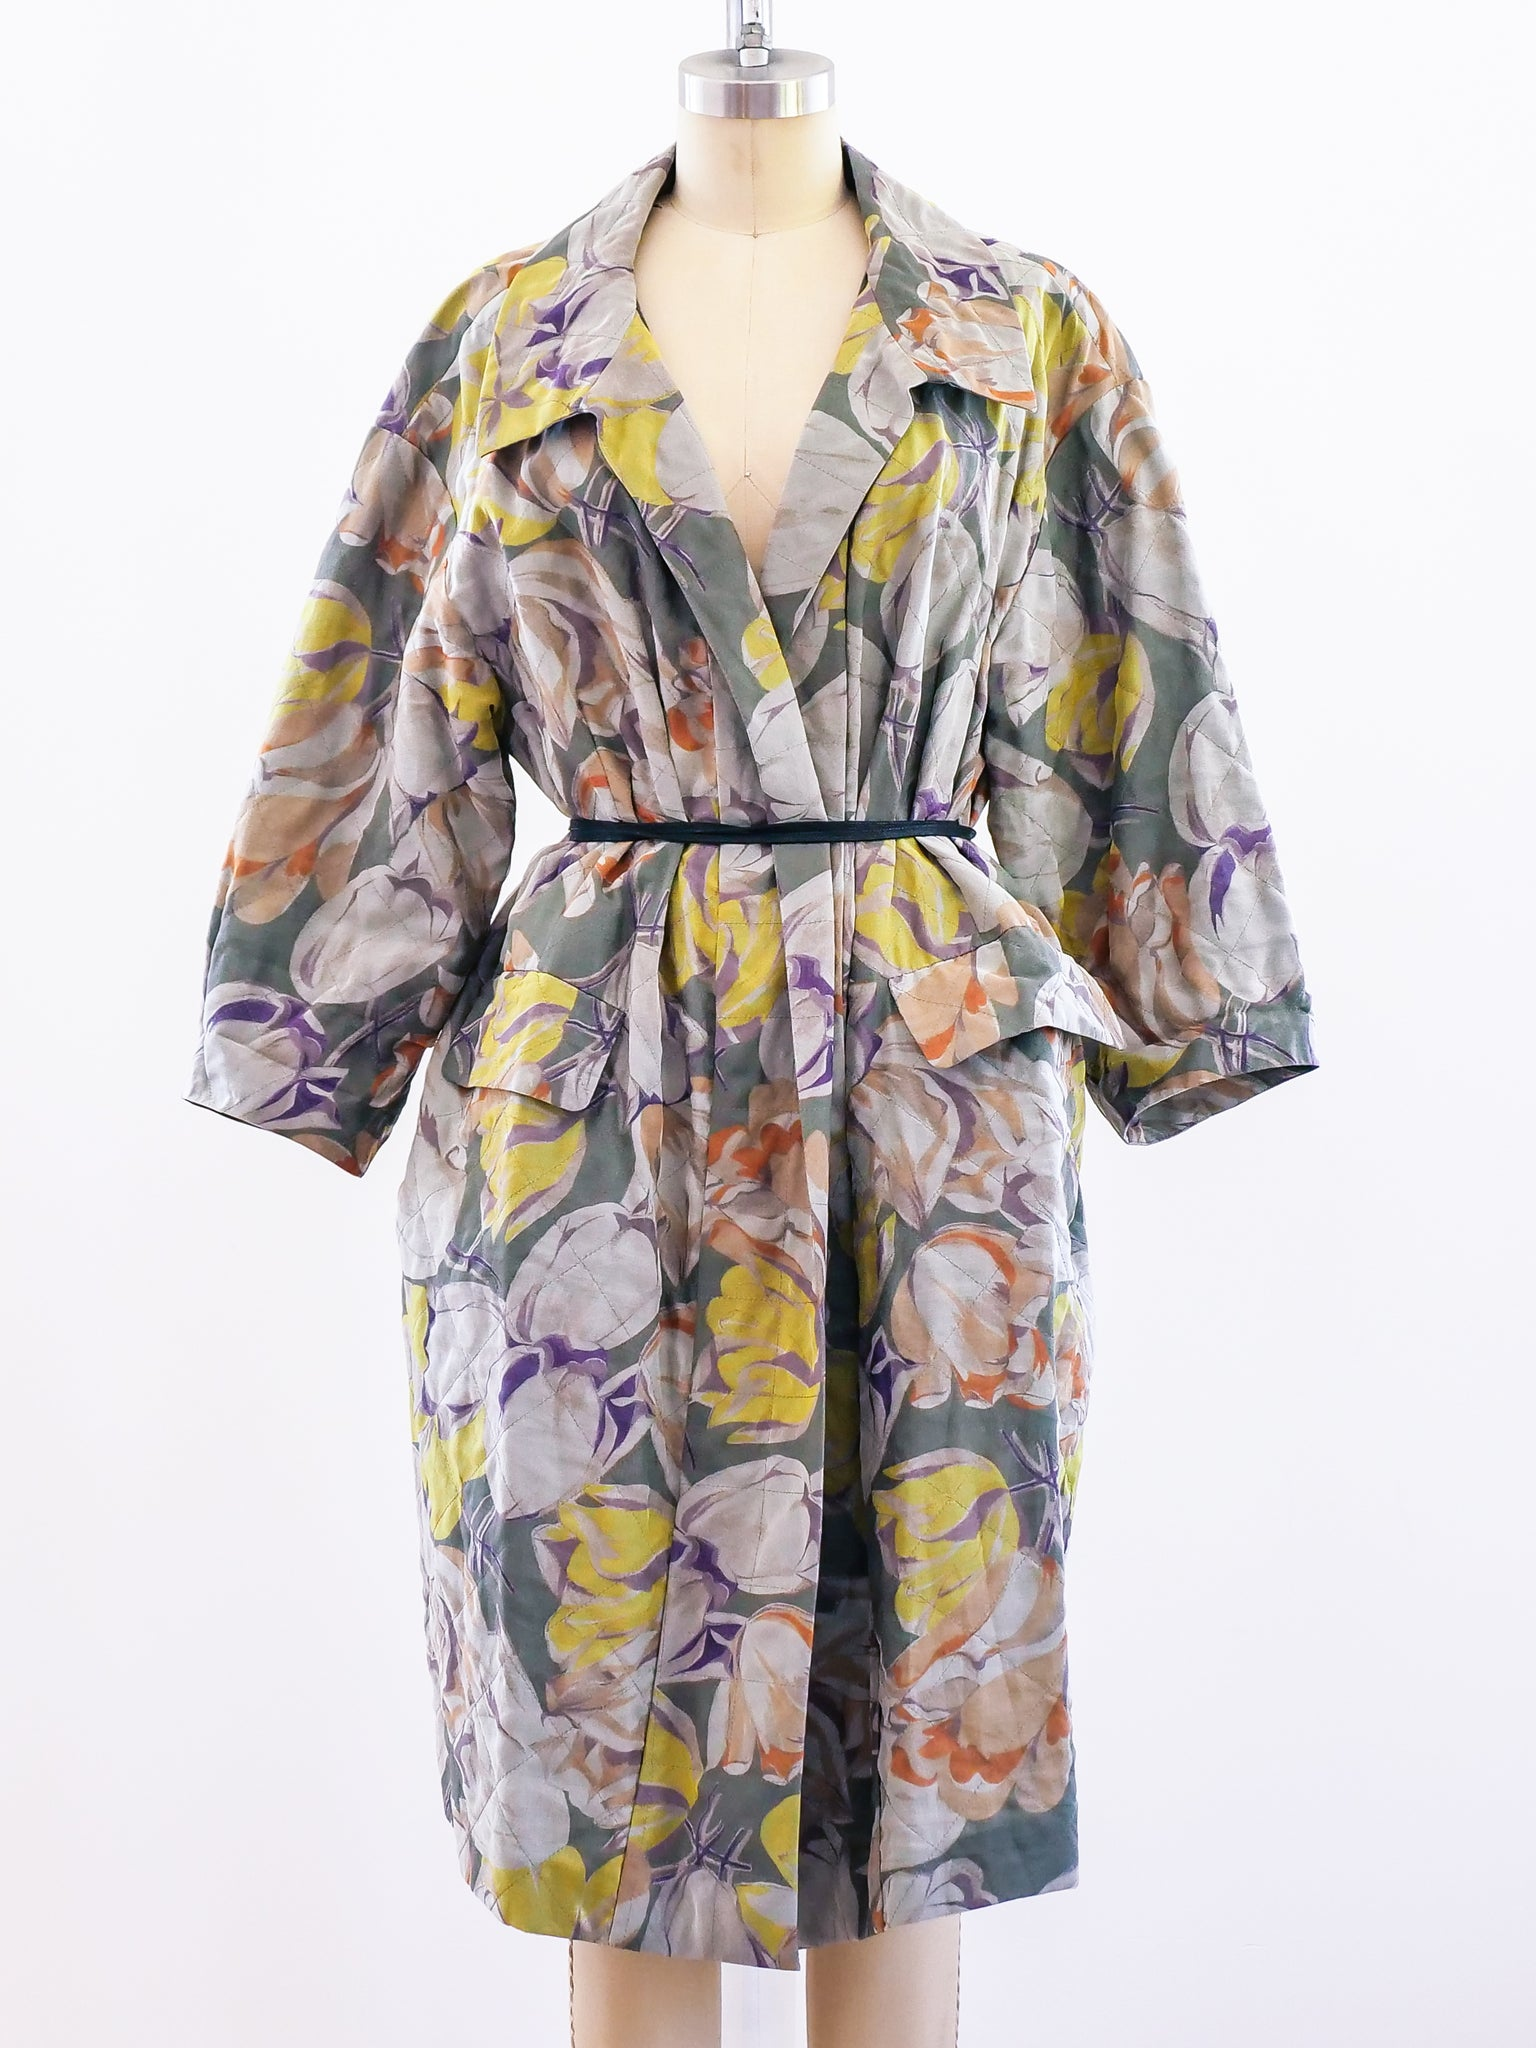 Dries van Noten Watercolor Floral Coat